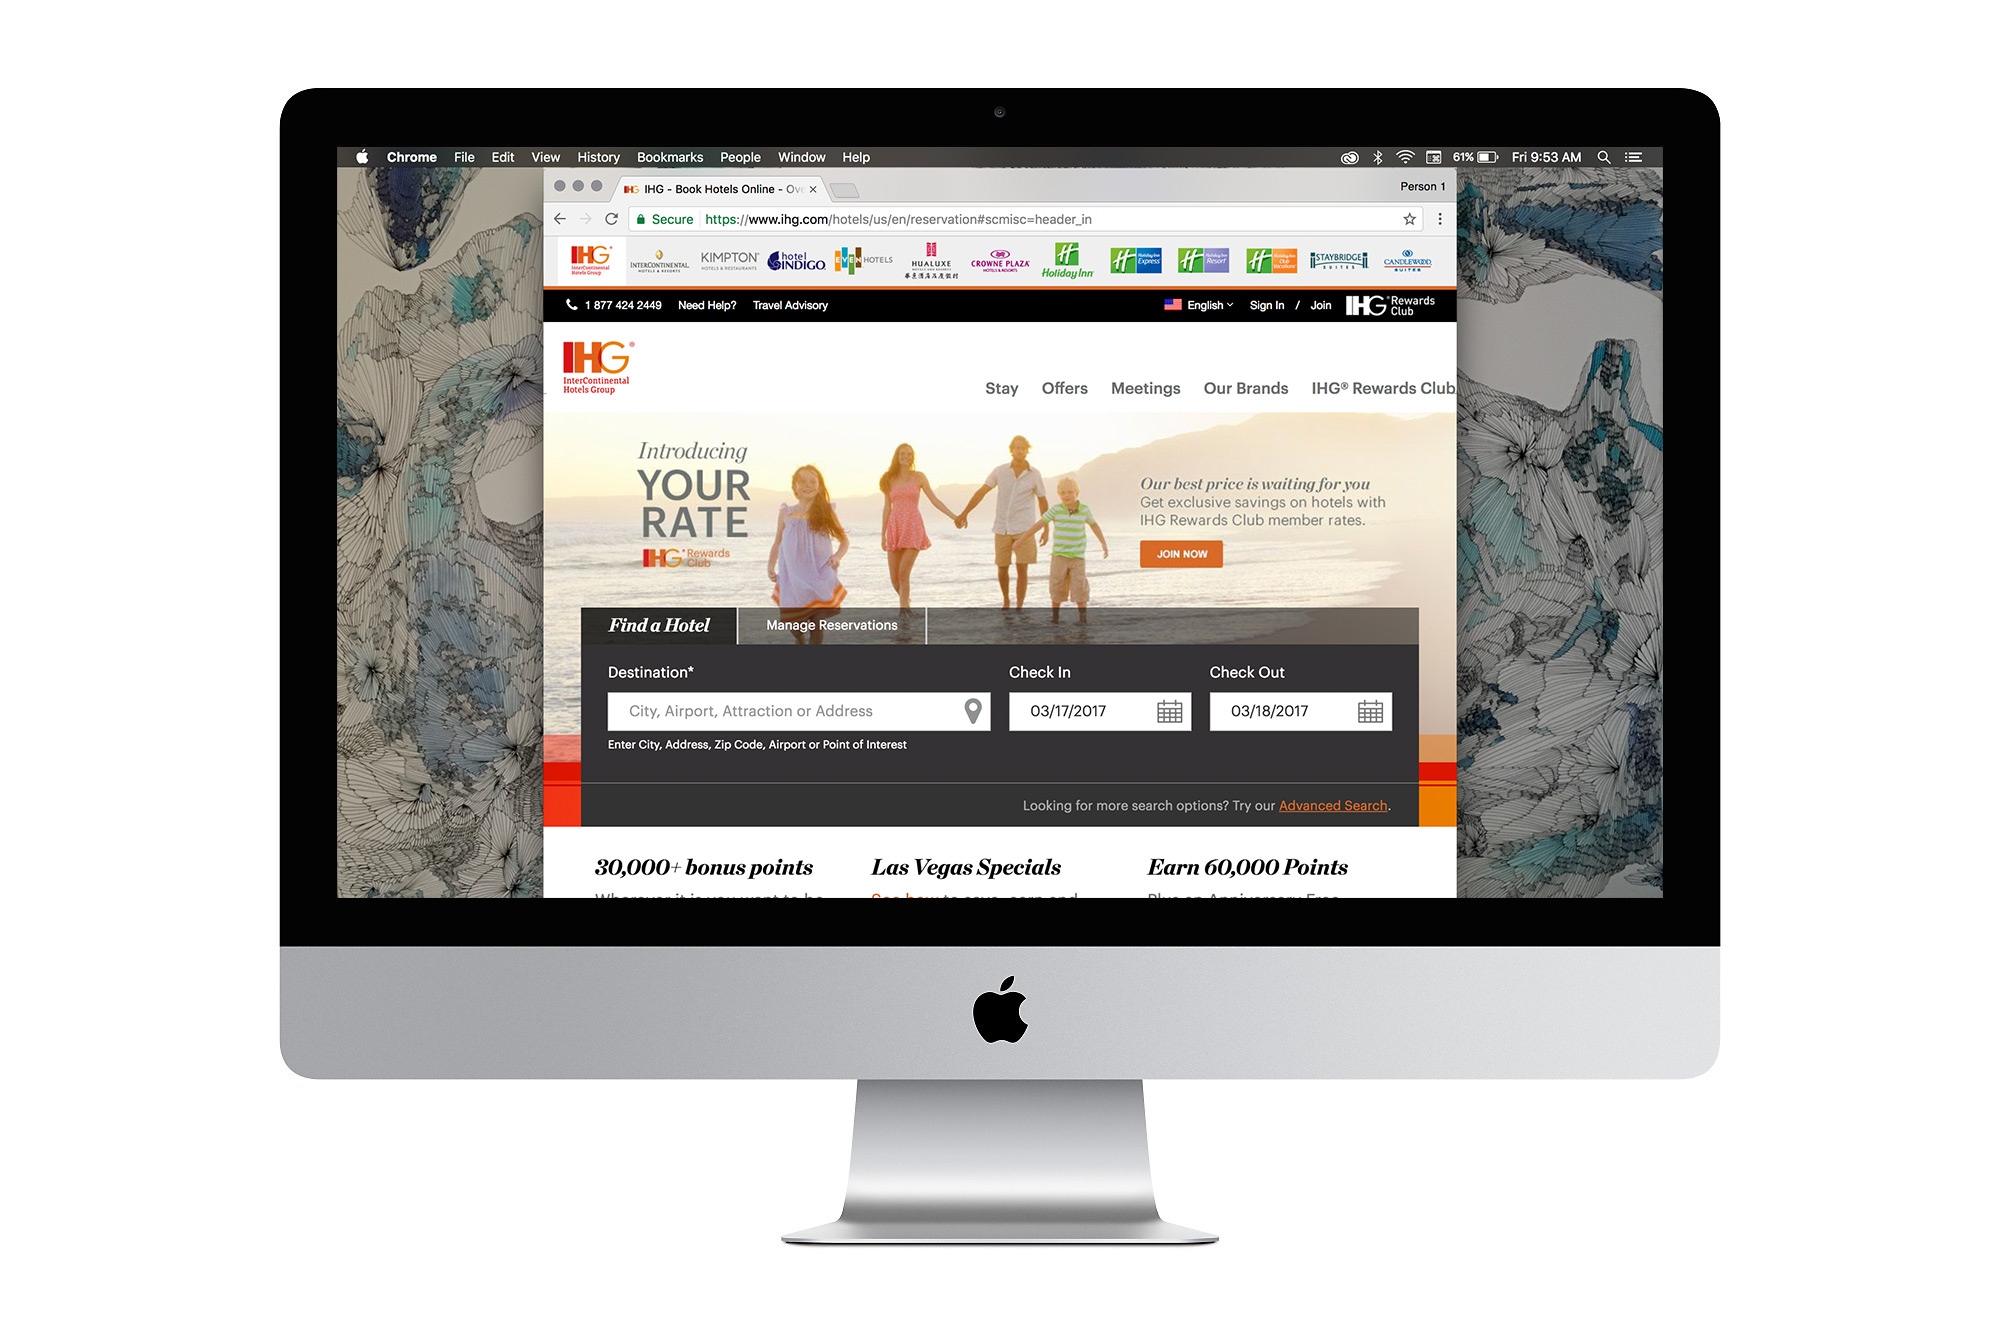 The homepage image for IHG, featuring a father, son, mother and daughter holding hands on an idyllic beach